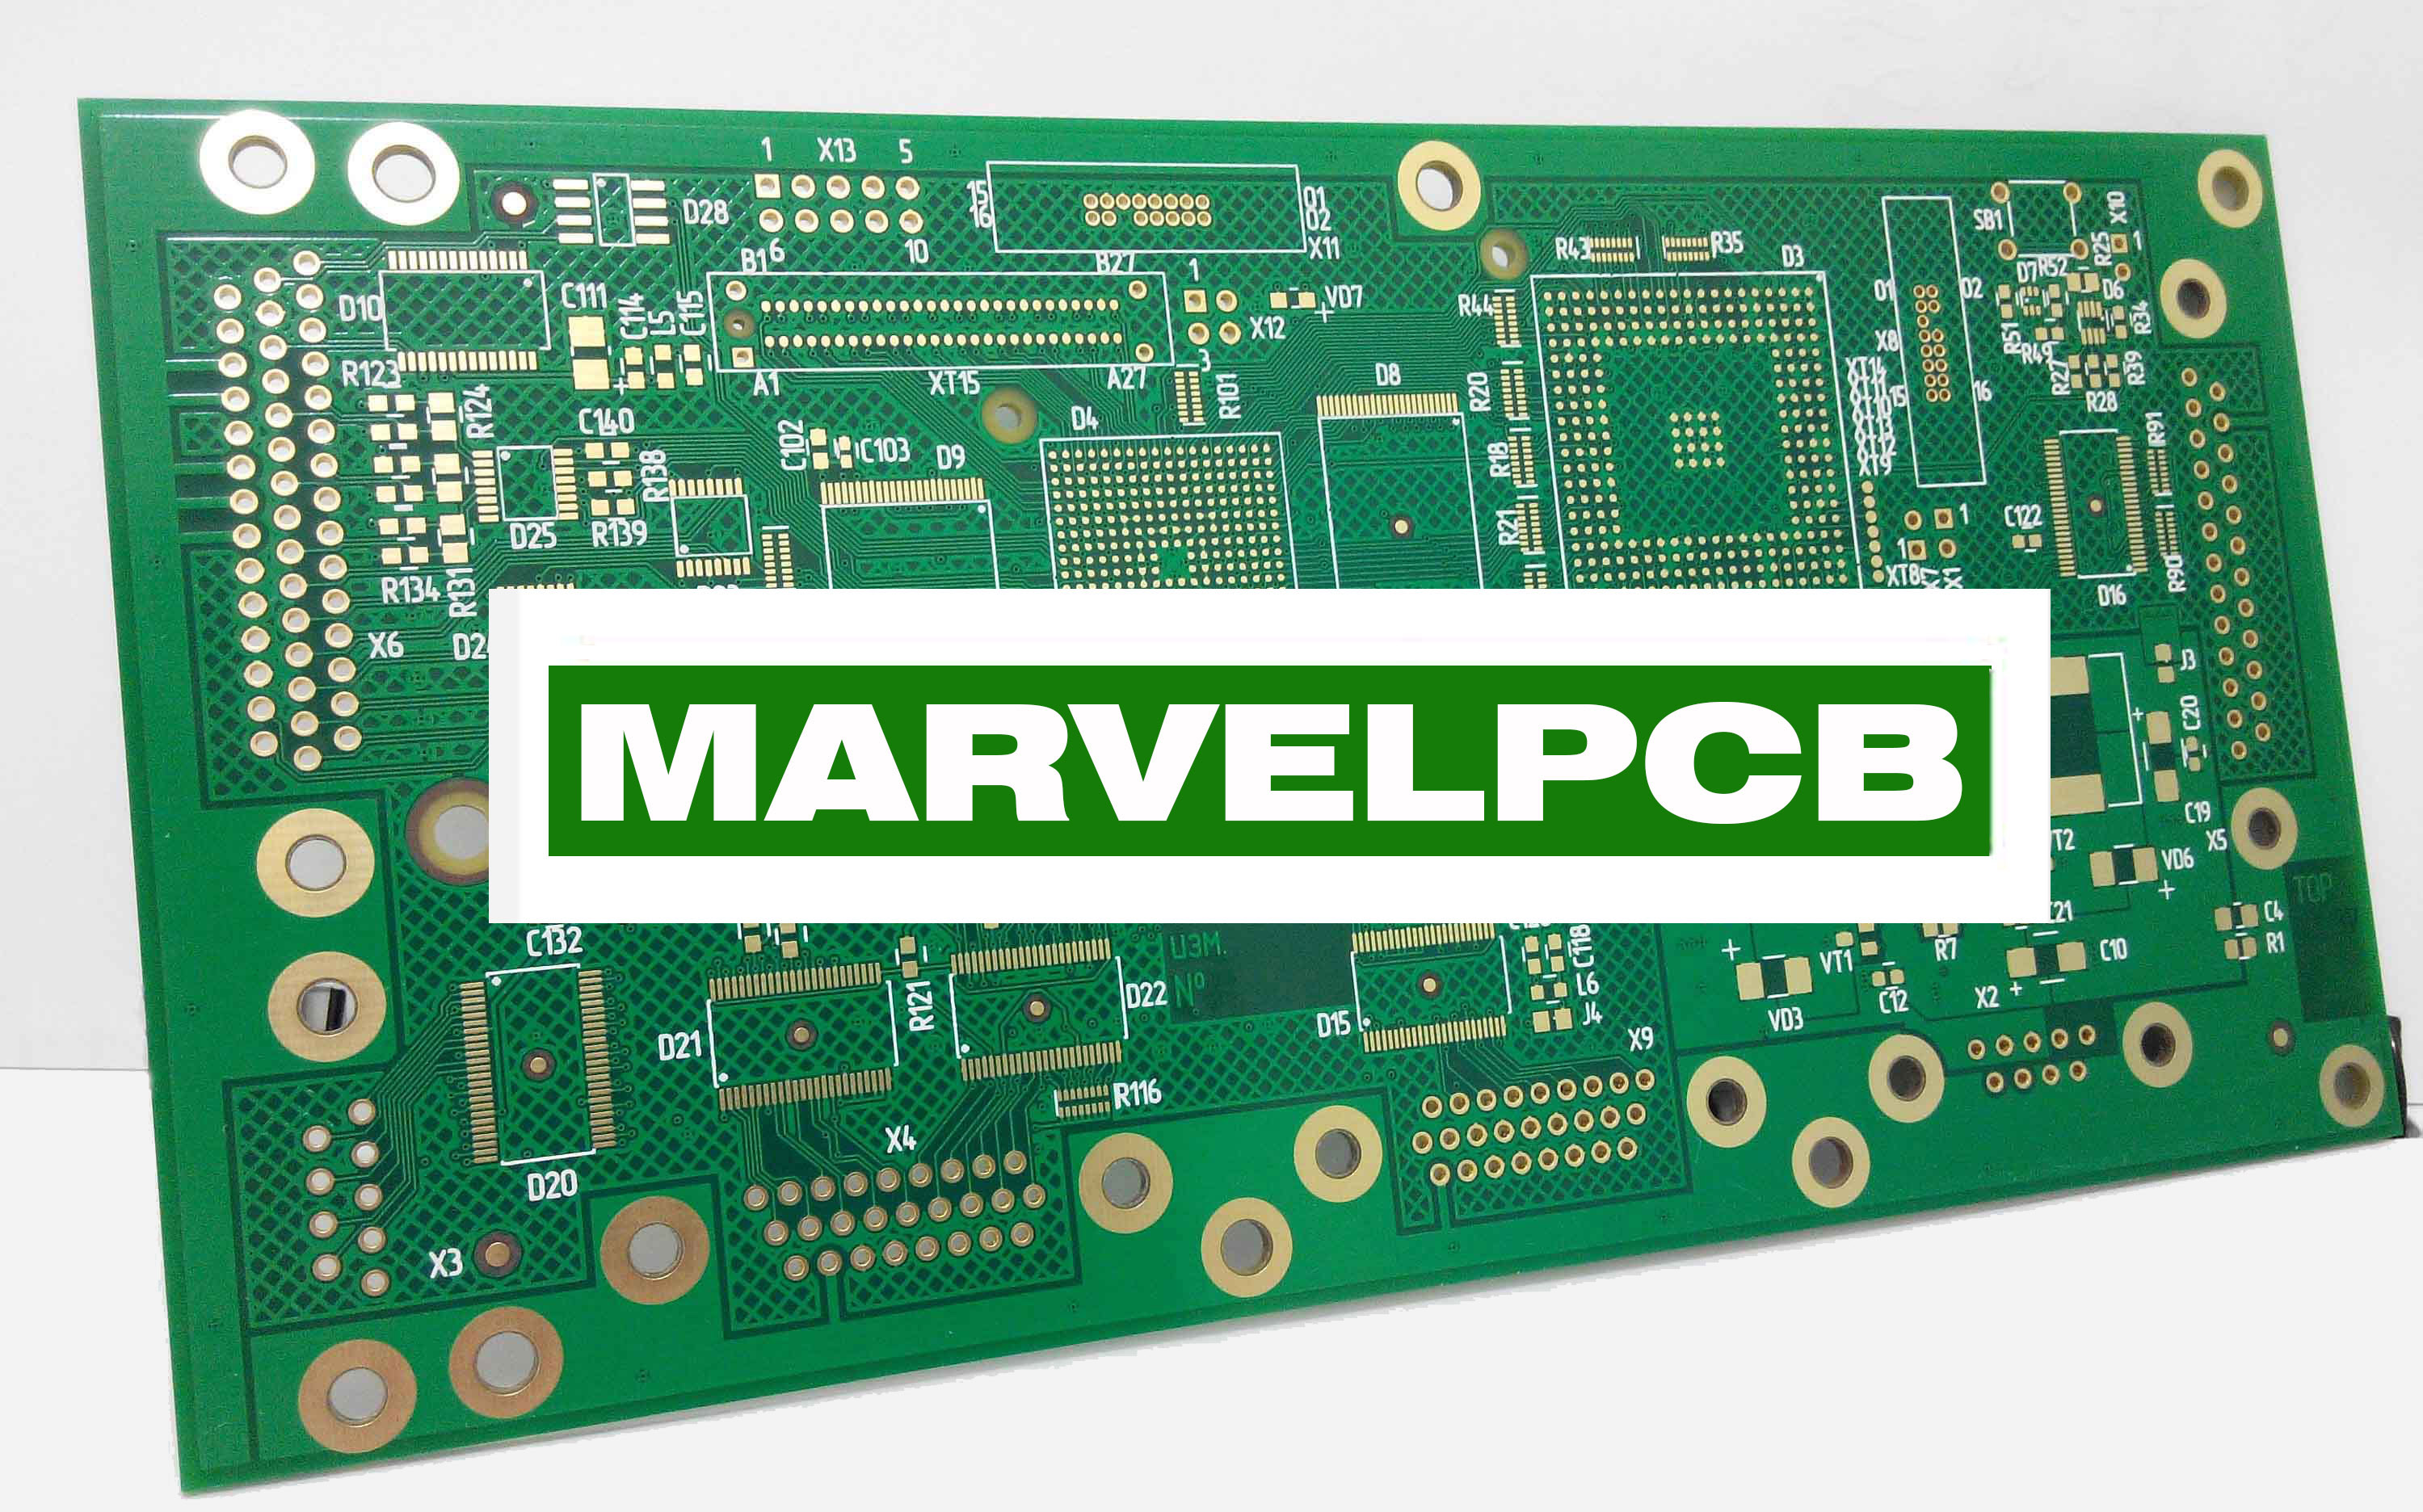 Prototype Making Without Quantities Limit Multilayer Printed Wiring Board Pcb By Marvelpcb